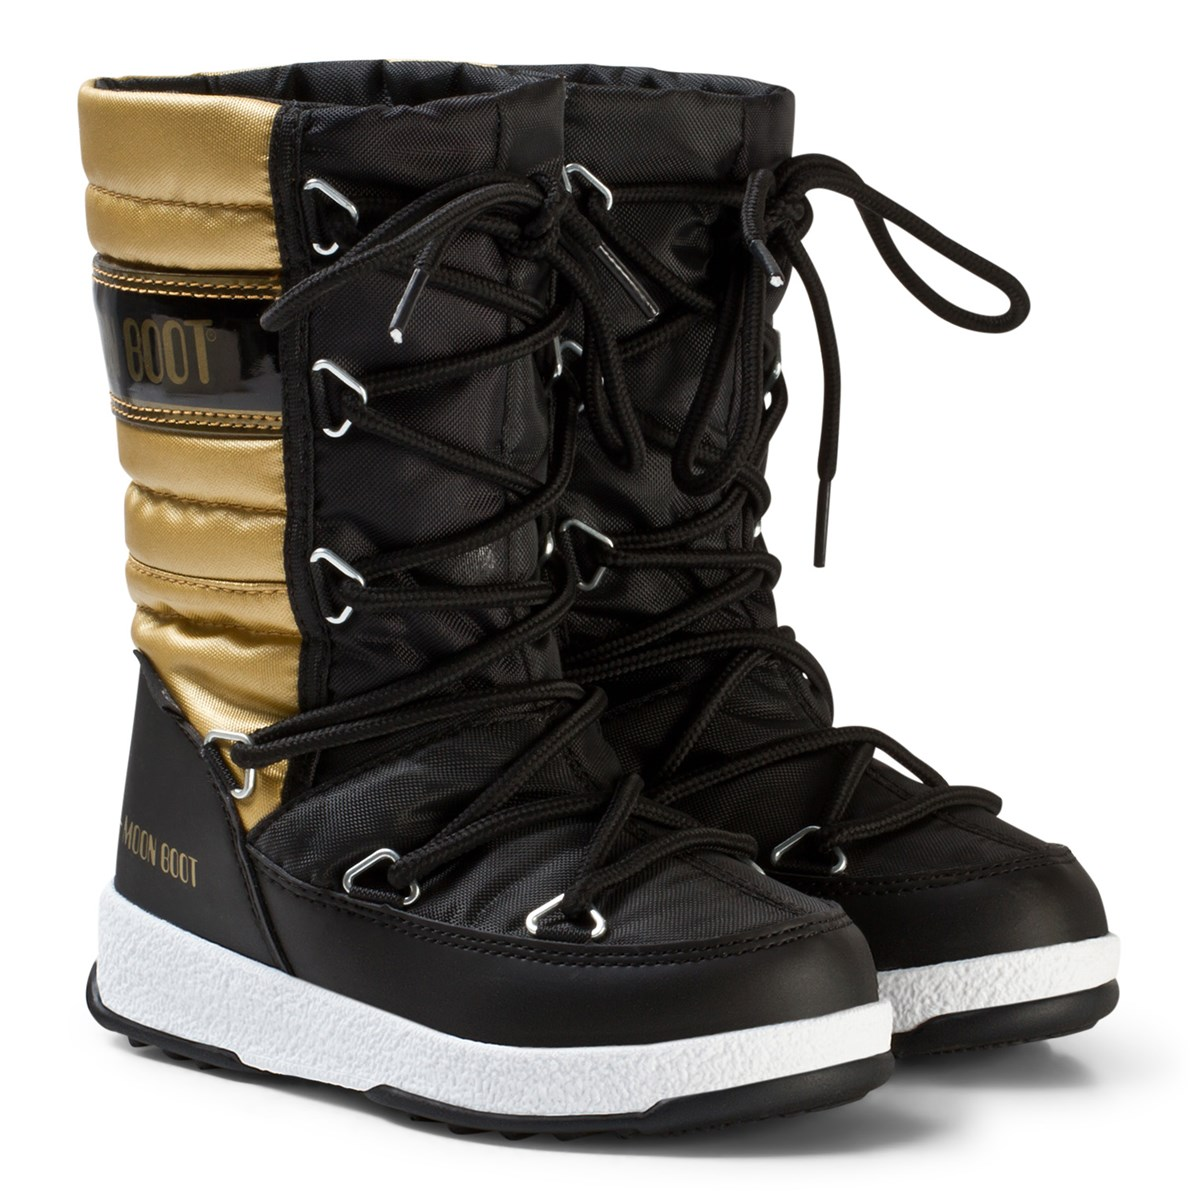 c117651bc992 Moon Boot Moon Boot Quilted Black and Gold Snow Boot